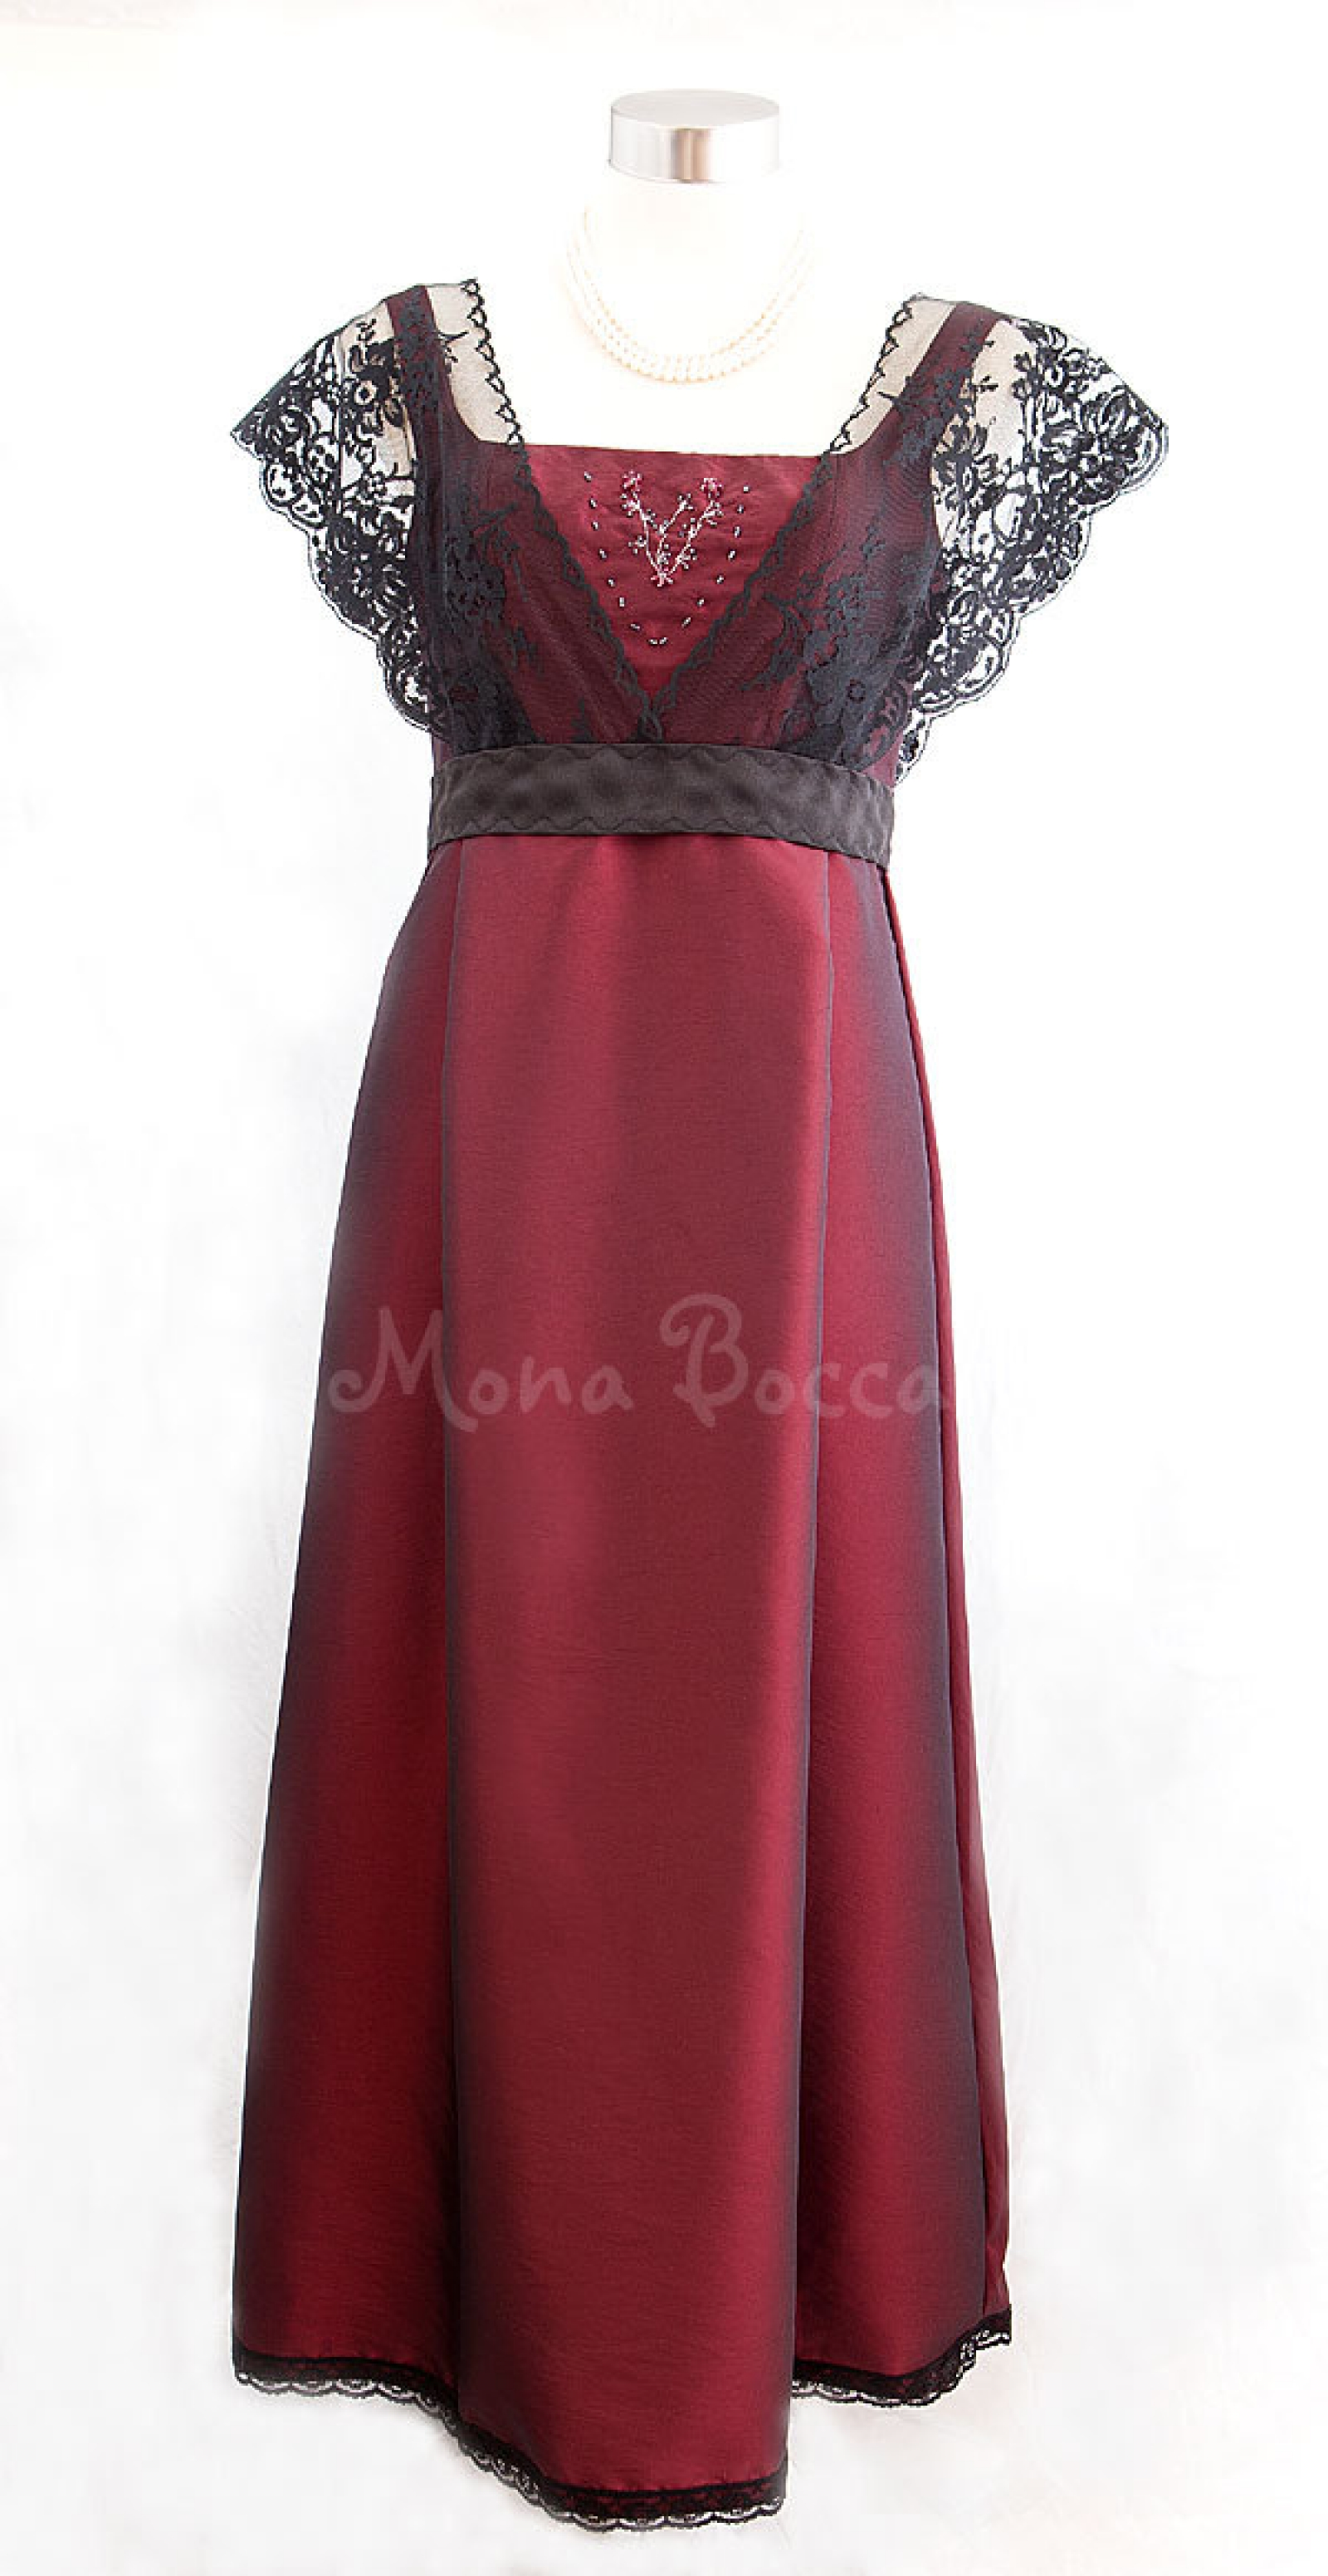 Downton Abbey Inspired Dress Mona Bocca Dresses